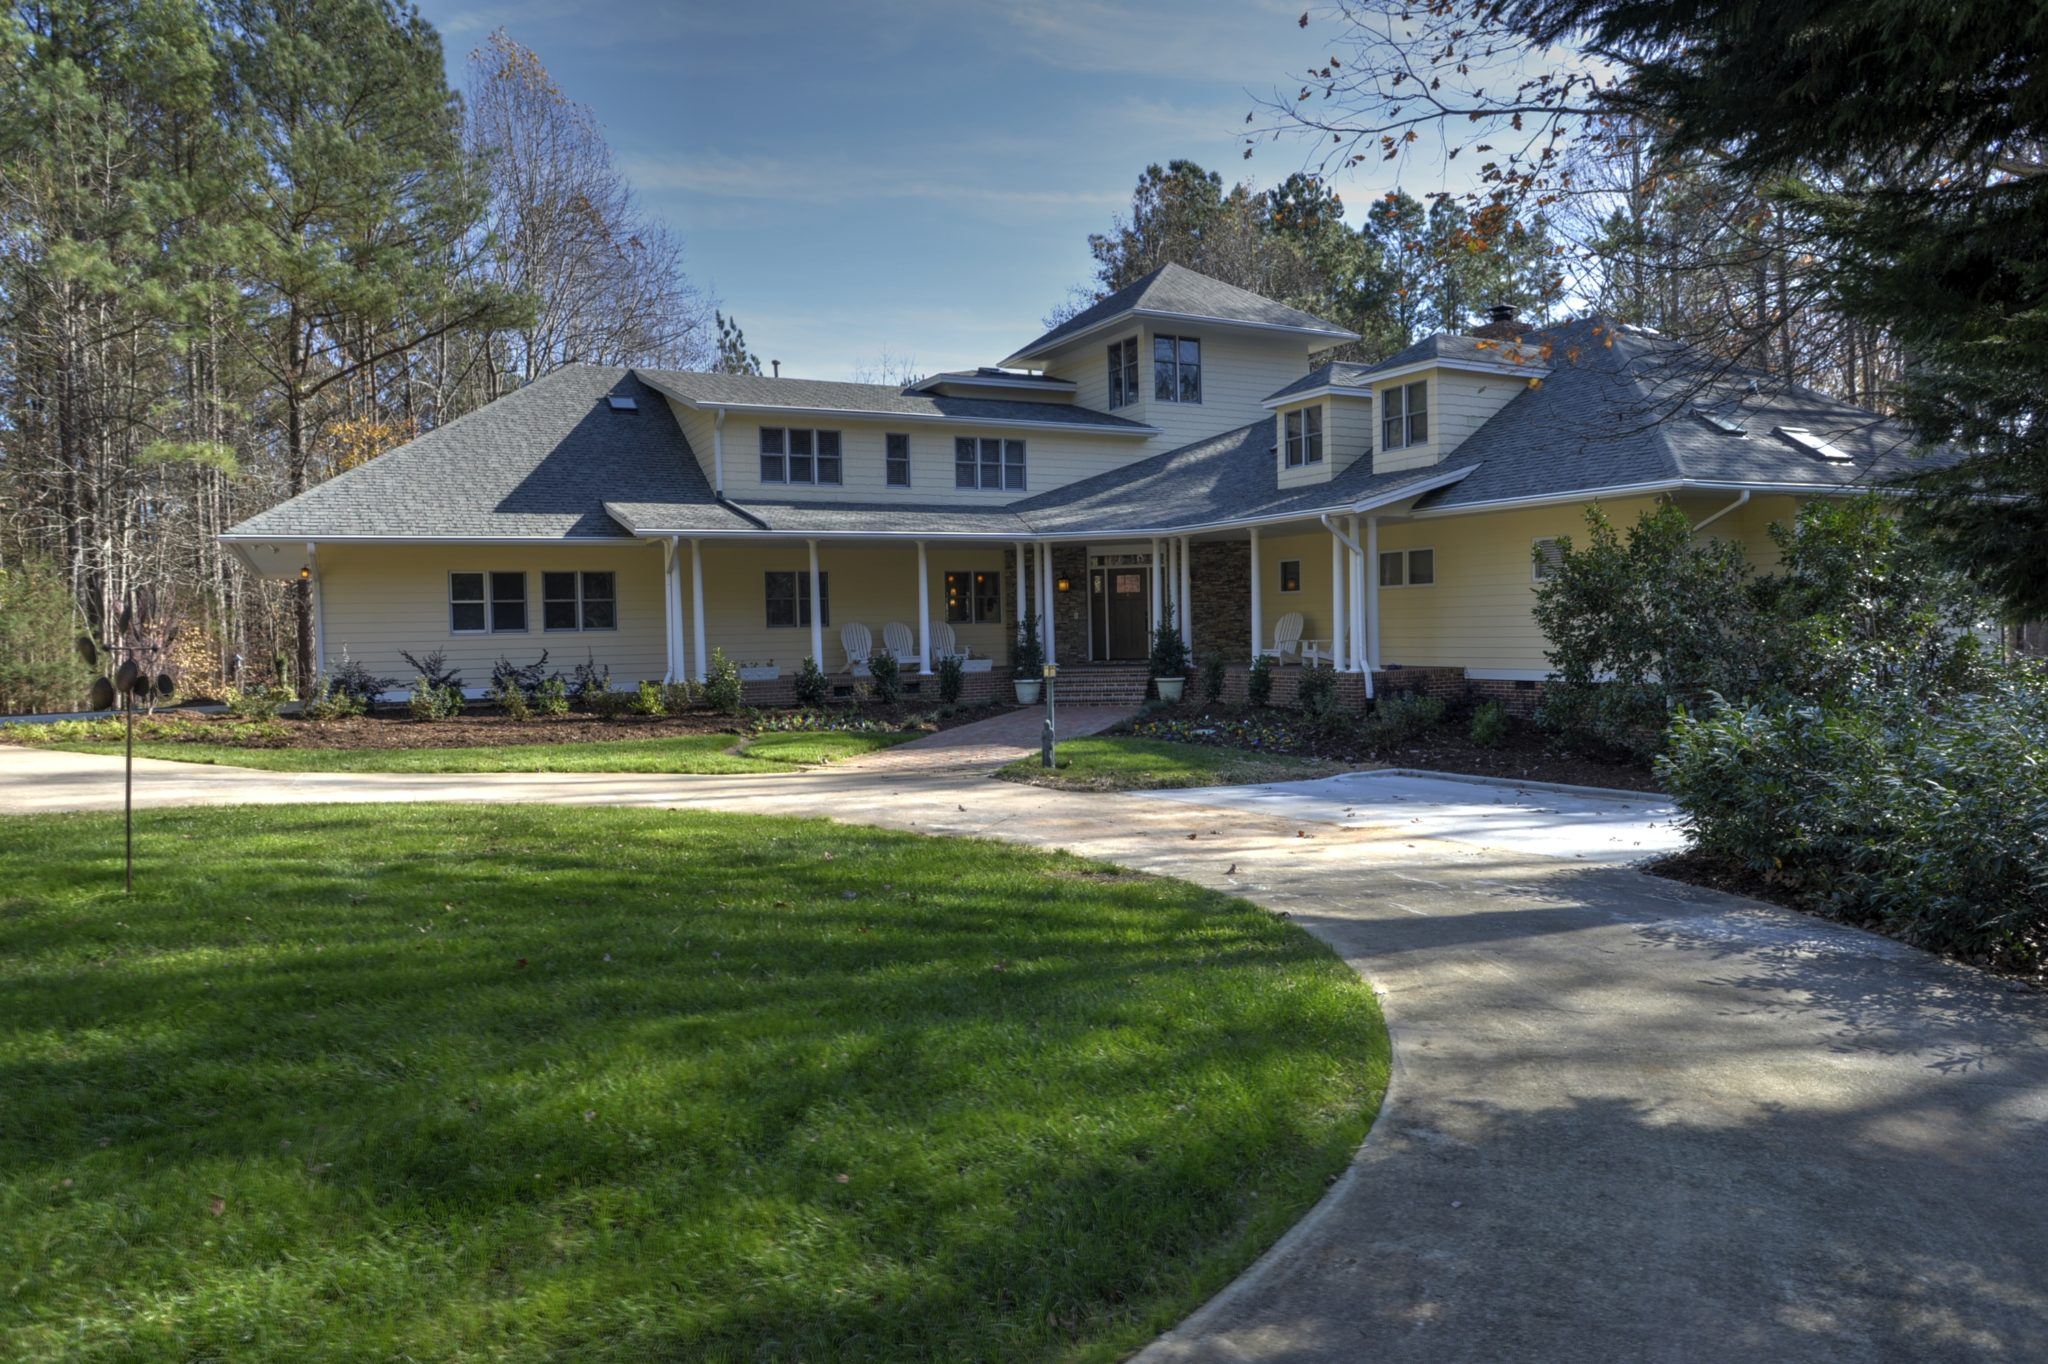 virtual tour provider in nc